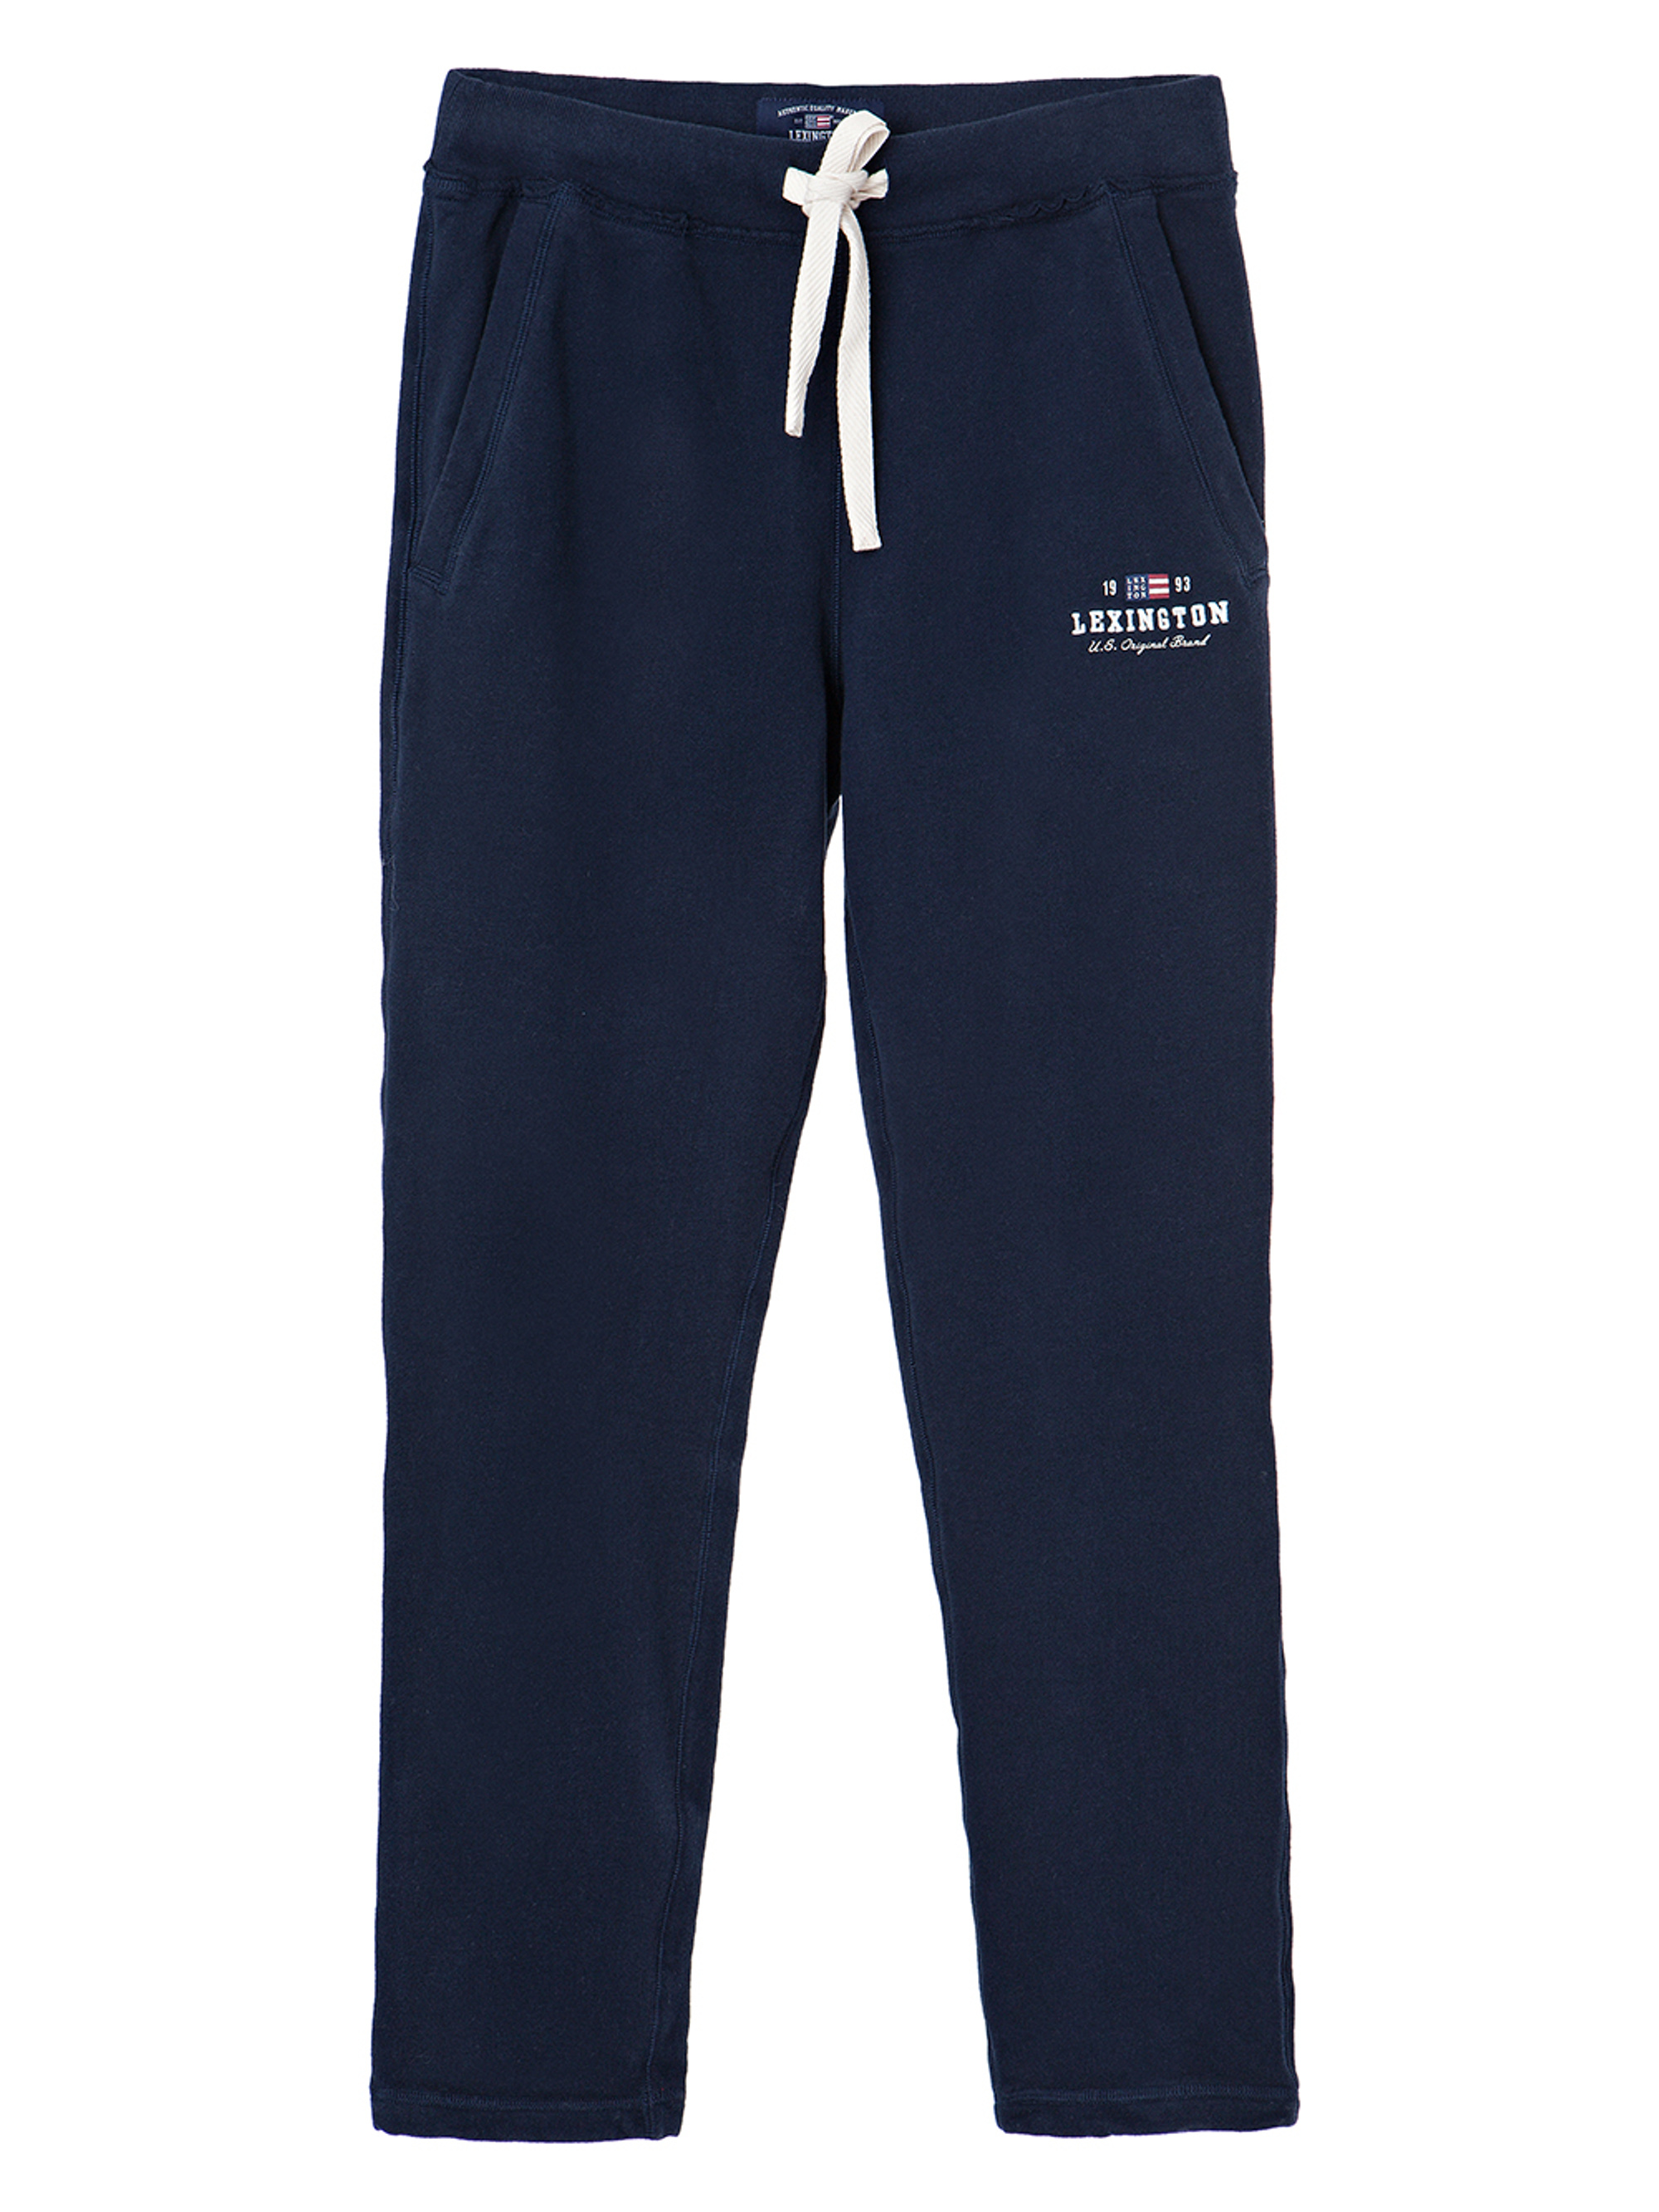 Brandon Jersey Pants, Deepest Blue